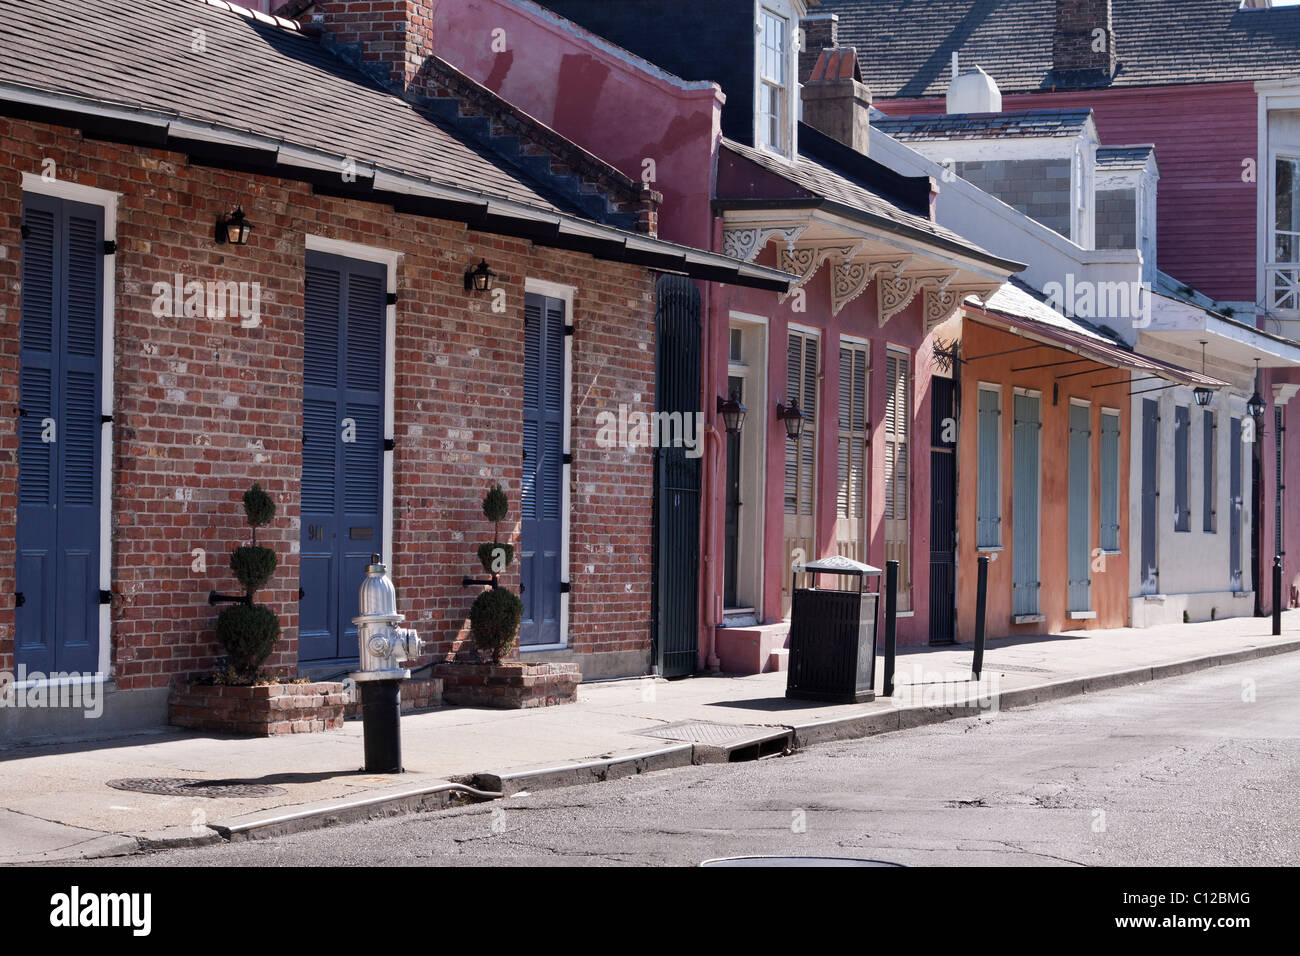 Row of Creole townhouses in the French Quarter of New Orleans, Louisiana - Stock Image